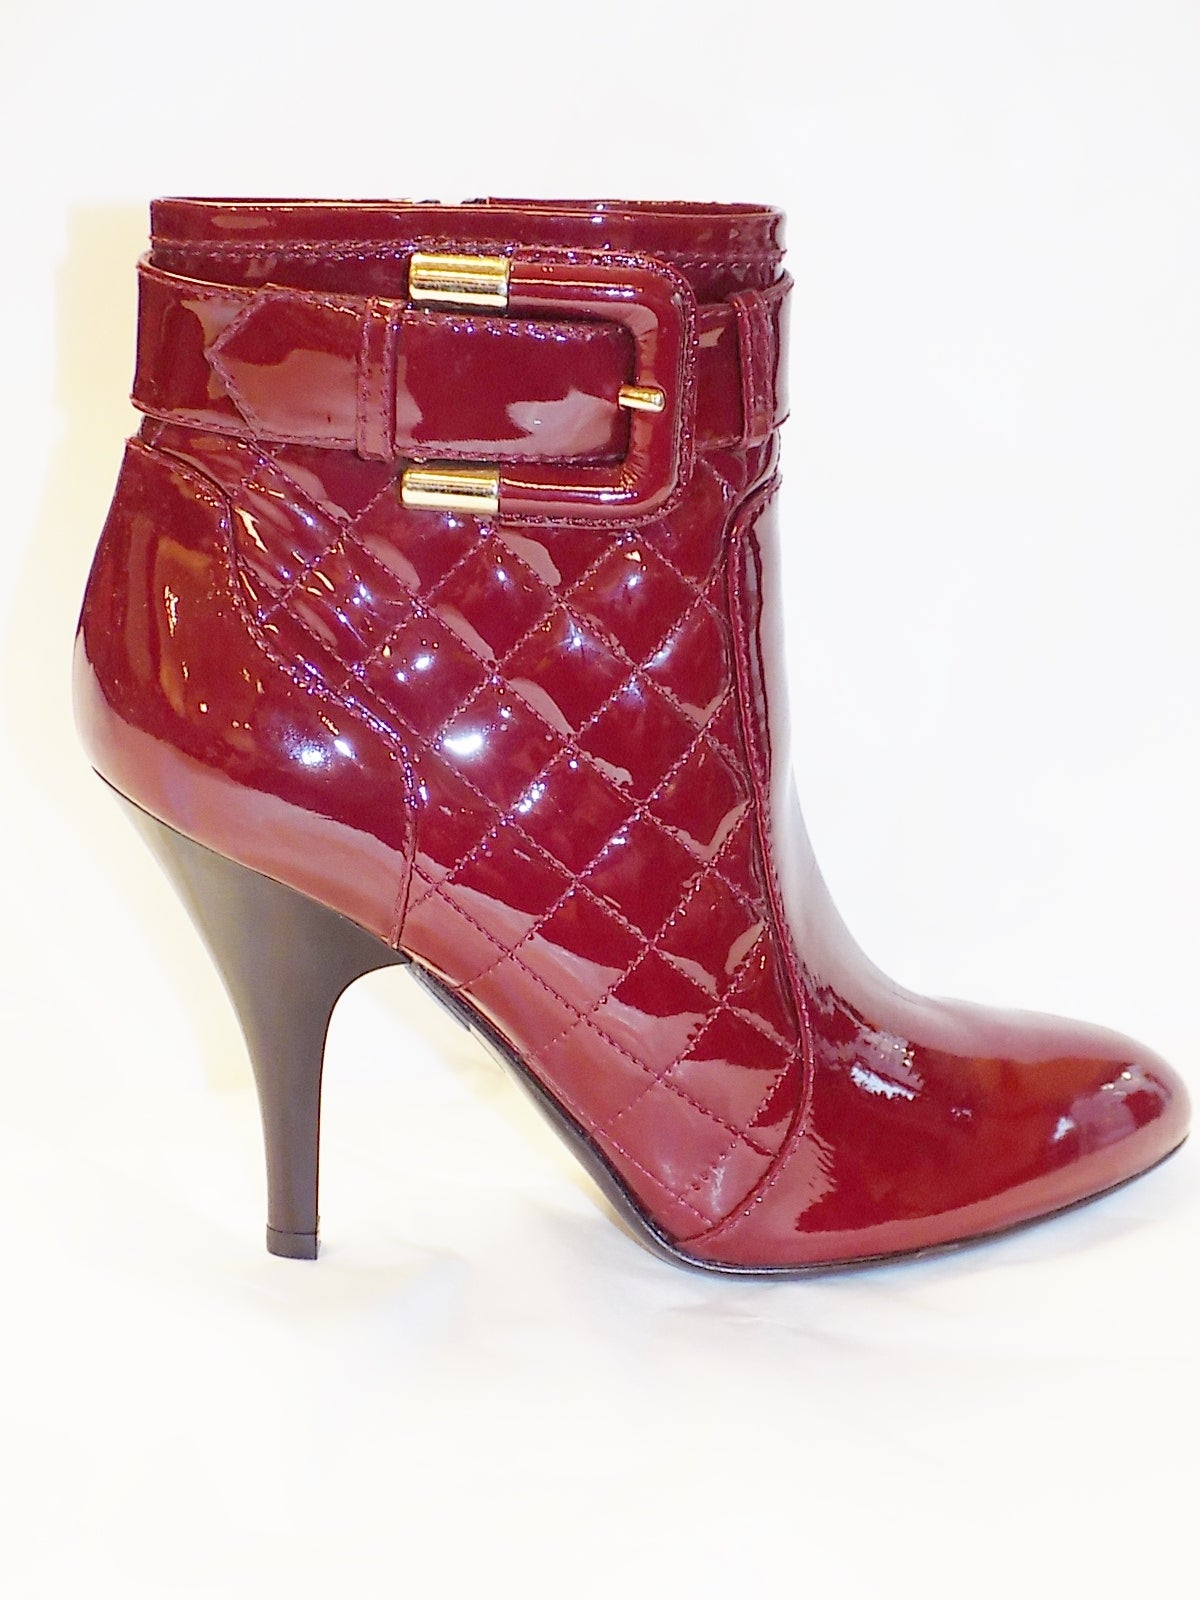 New Burberry Burgundy Red Patent Leather Ankle Boots At